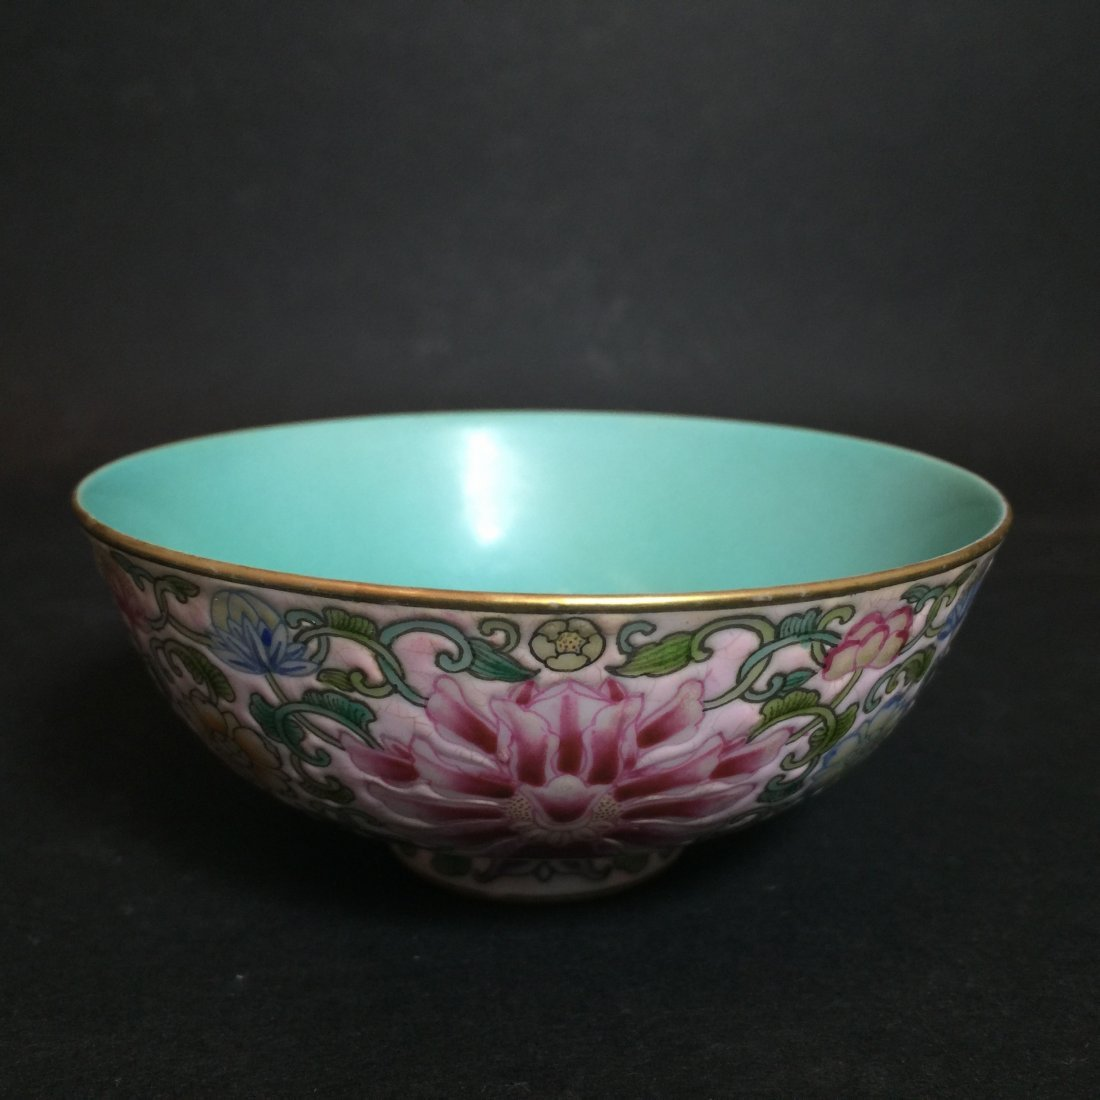 A Green-ish Blue Chinese Flower-blossom Bowl